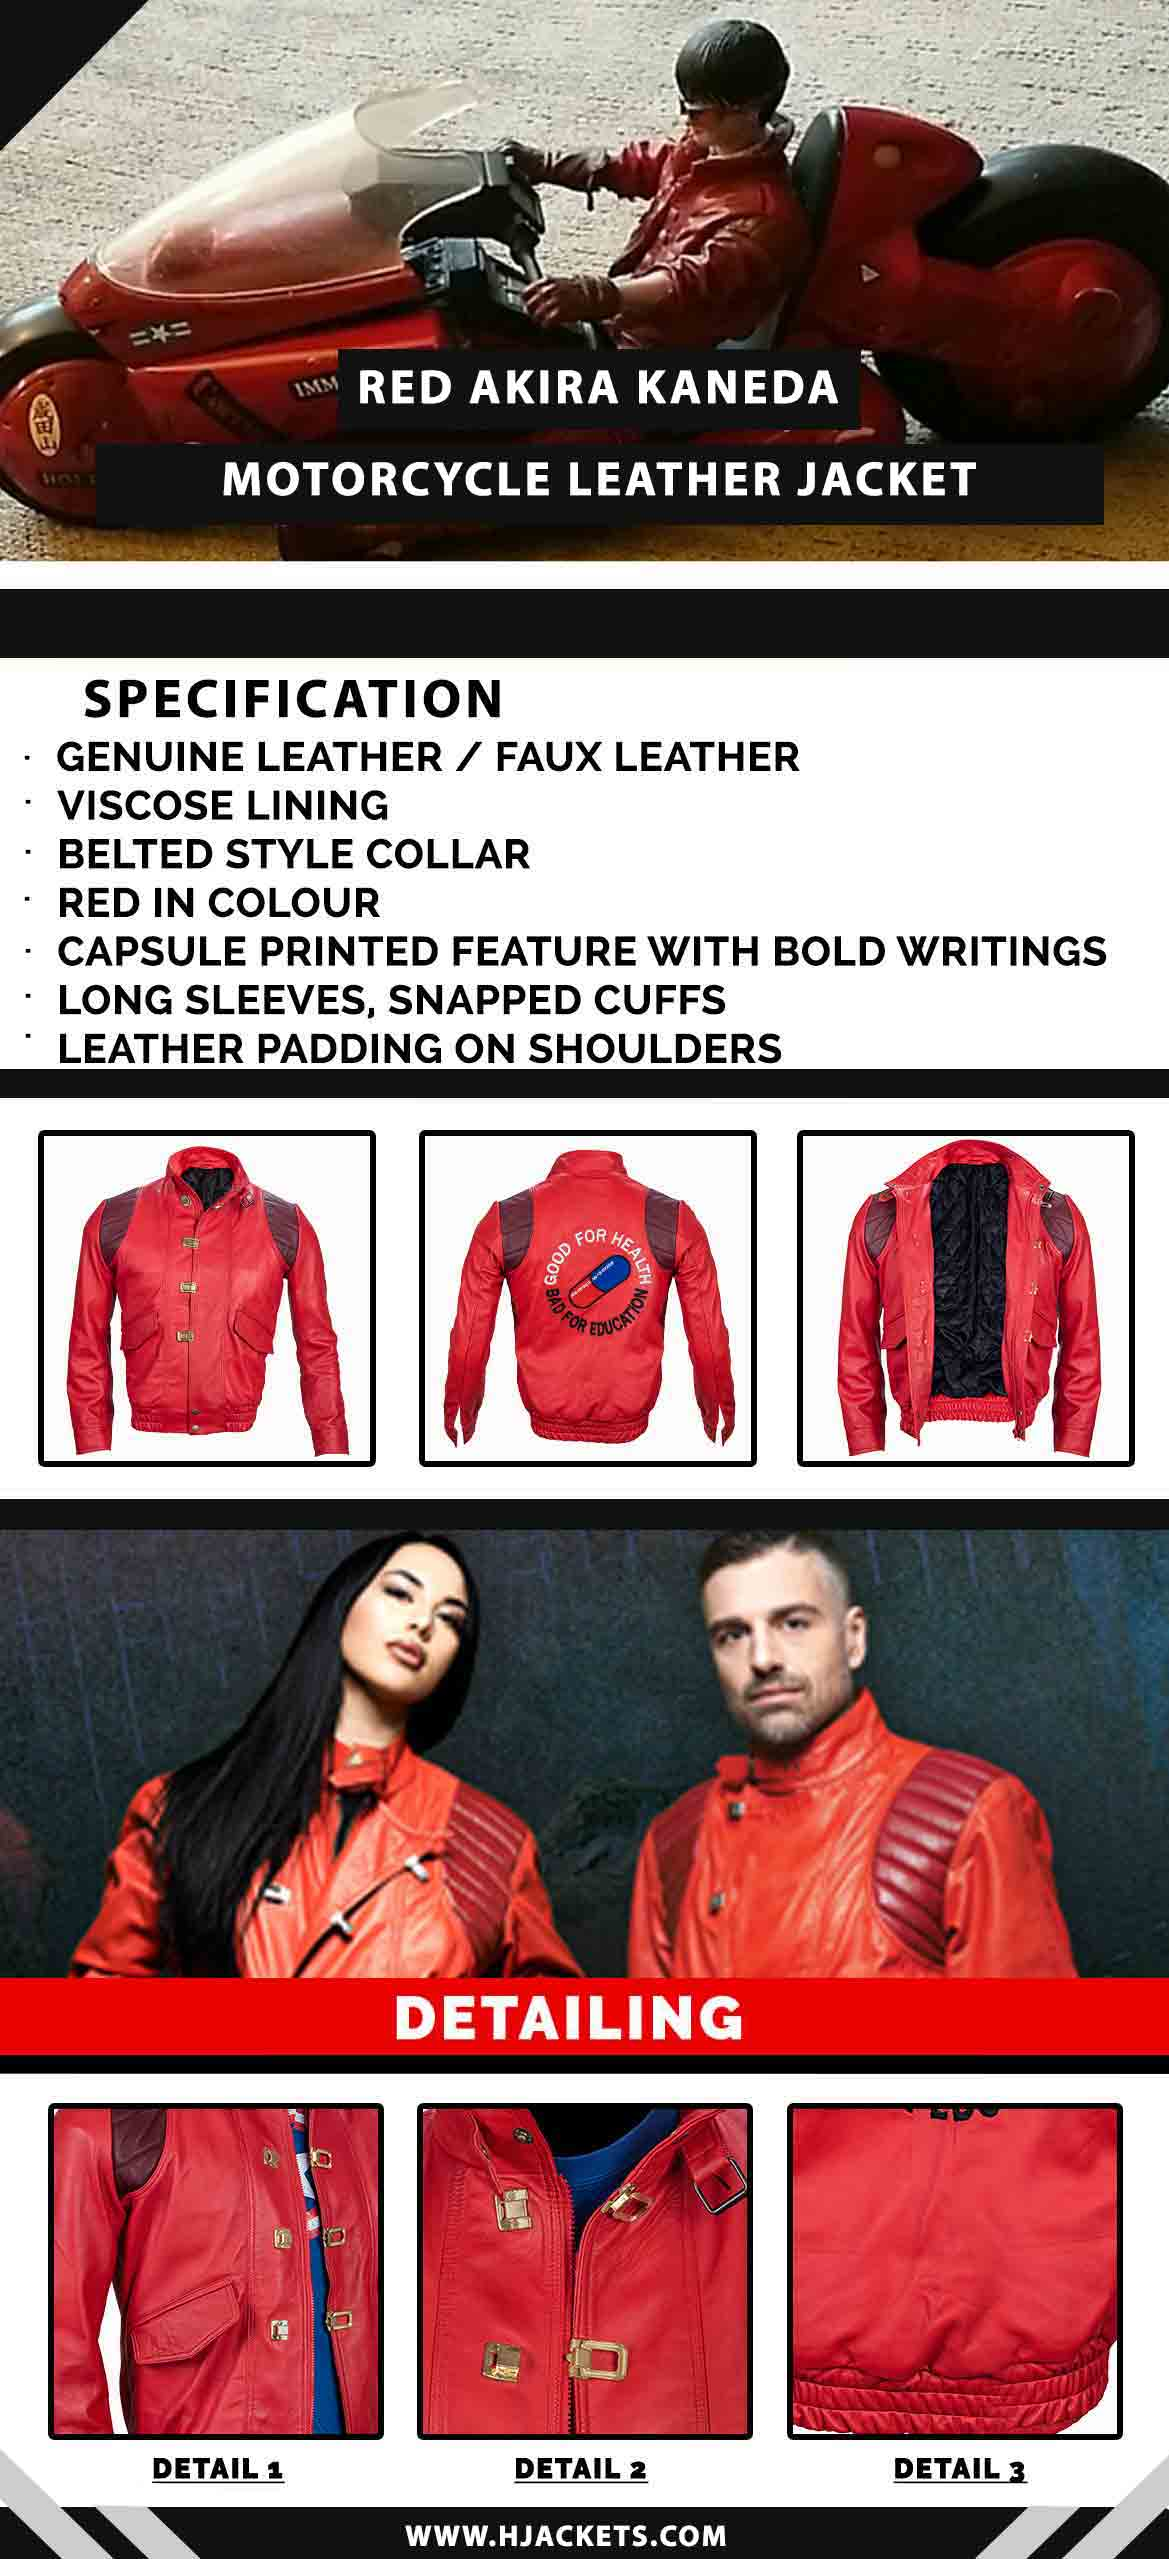 Red Akira Kaneda Motorcycle Leather Jacket Infographic